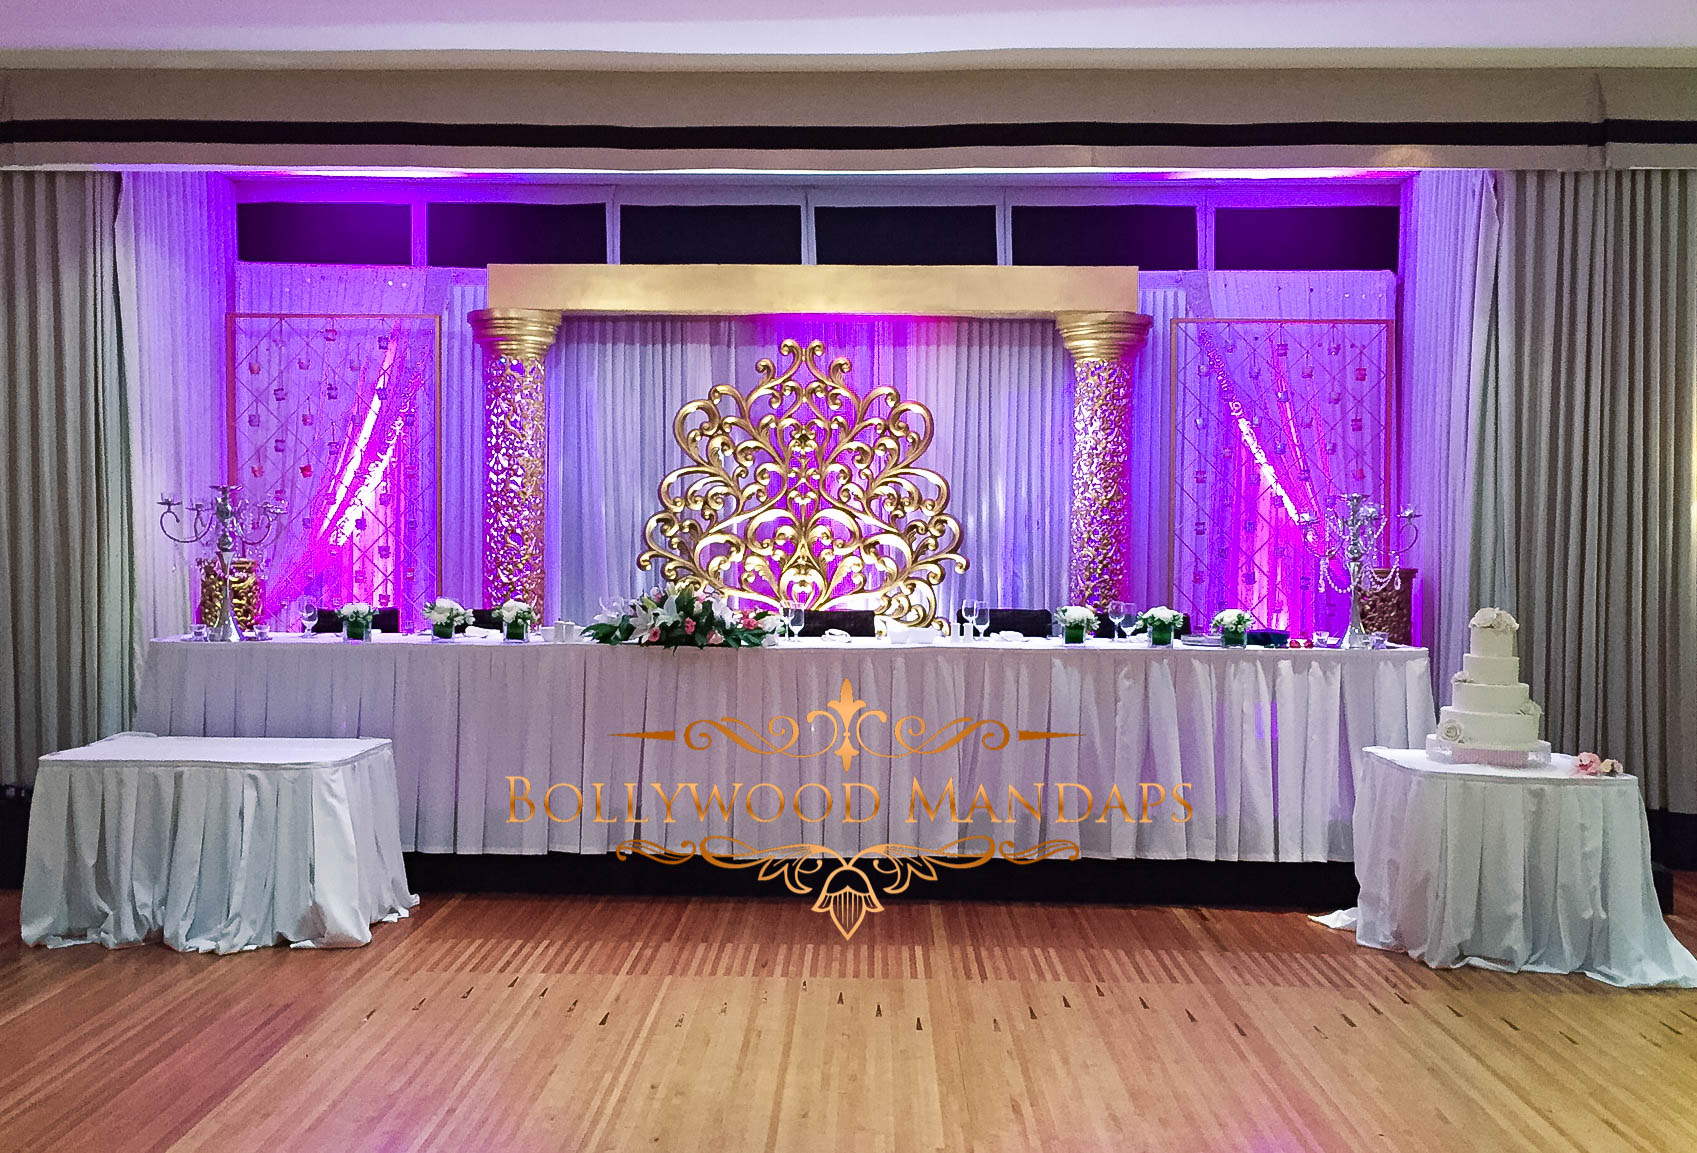 Tahmeena edris afghan wedding bollywood mandaps mandap hire venue brighton international junglespirit Images